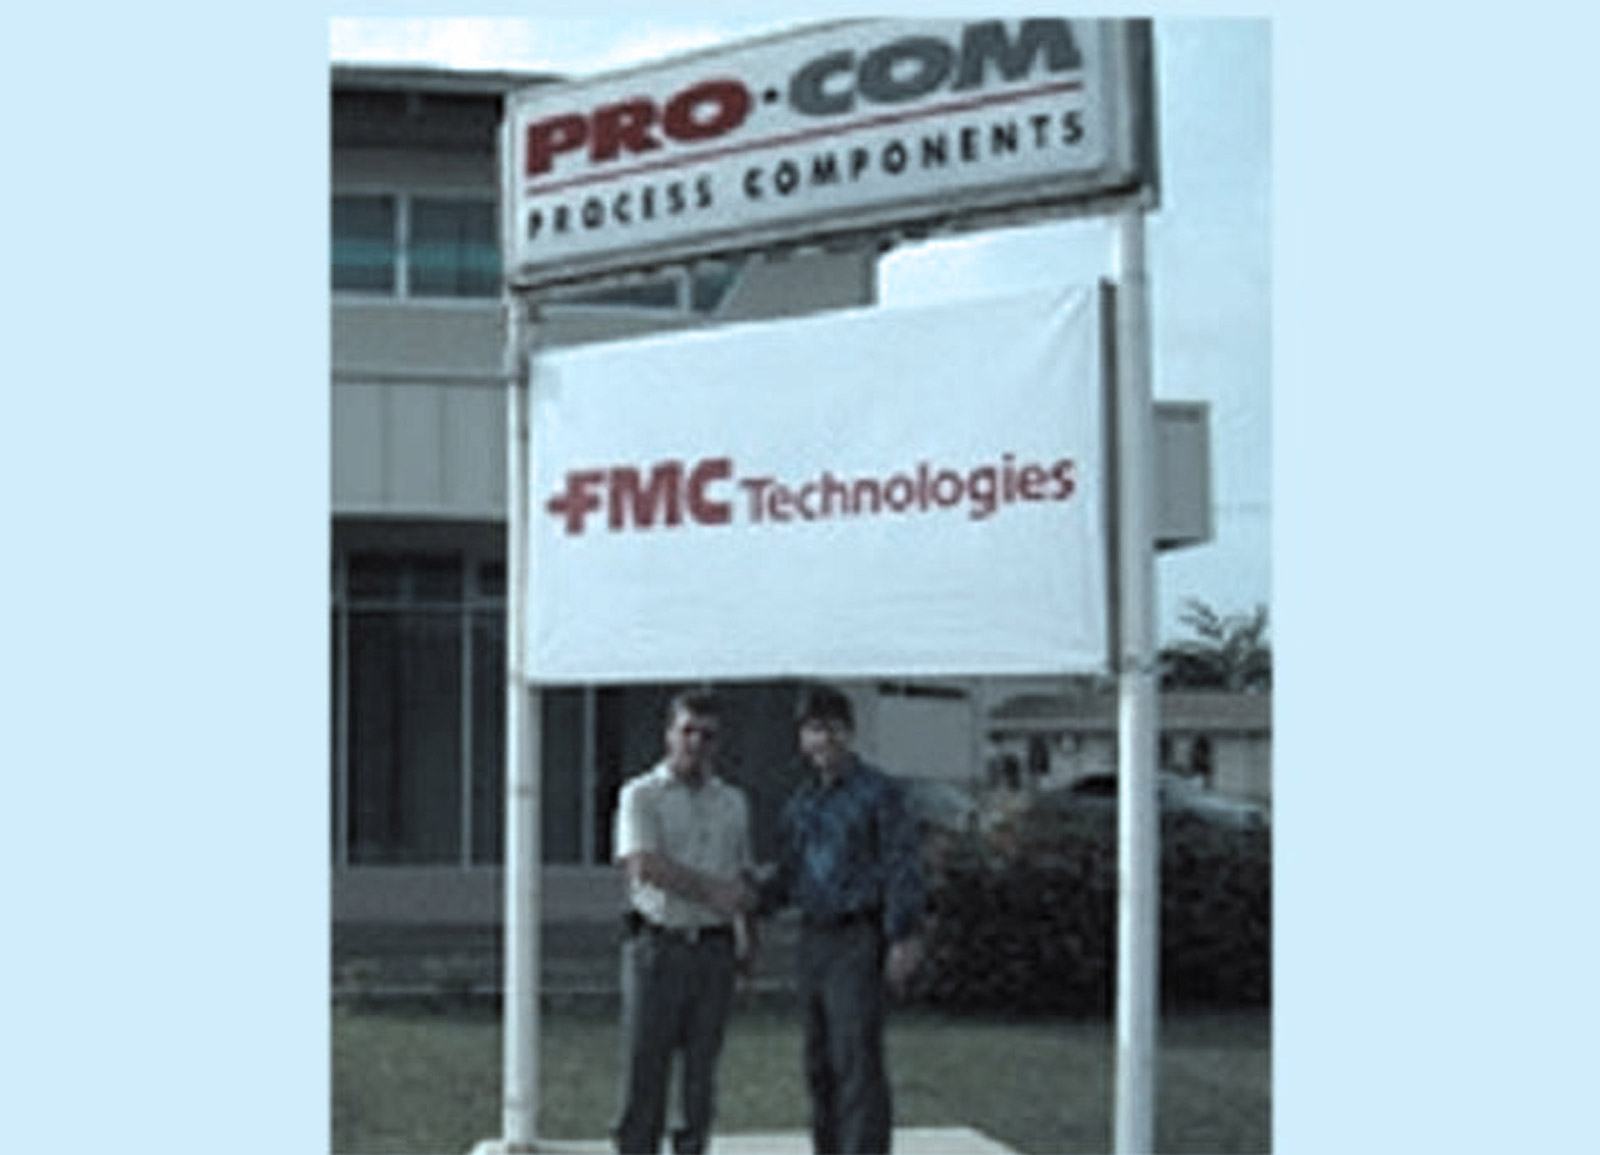 ProCom is the local agent for FMC Technologies